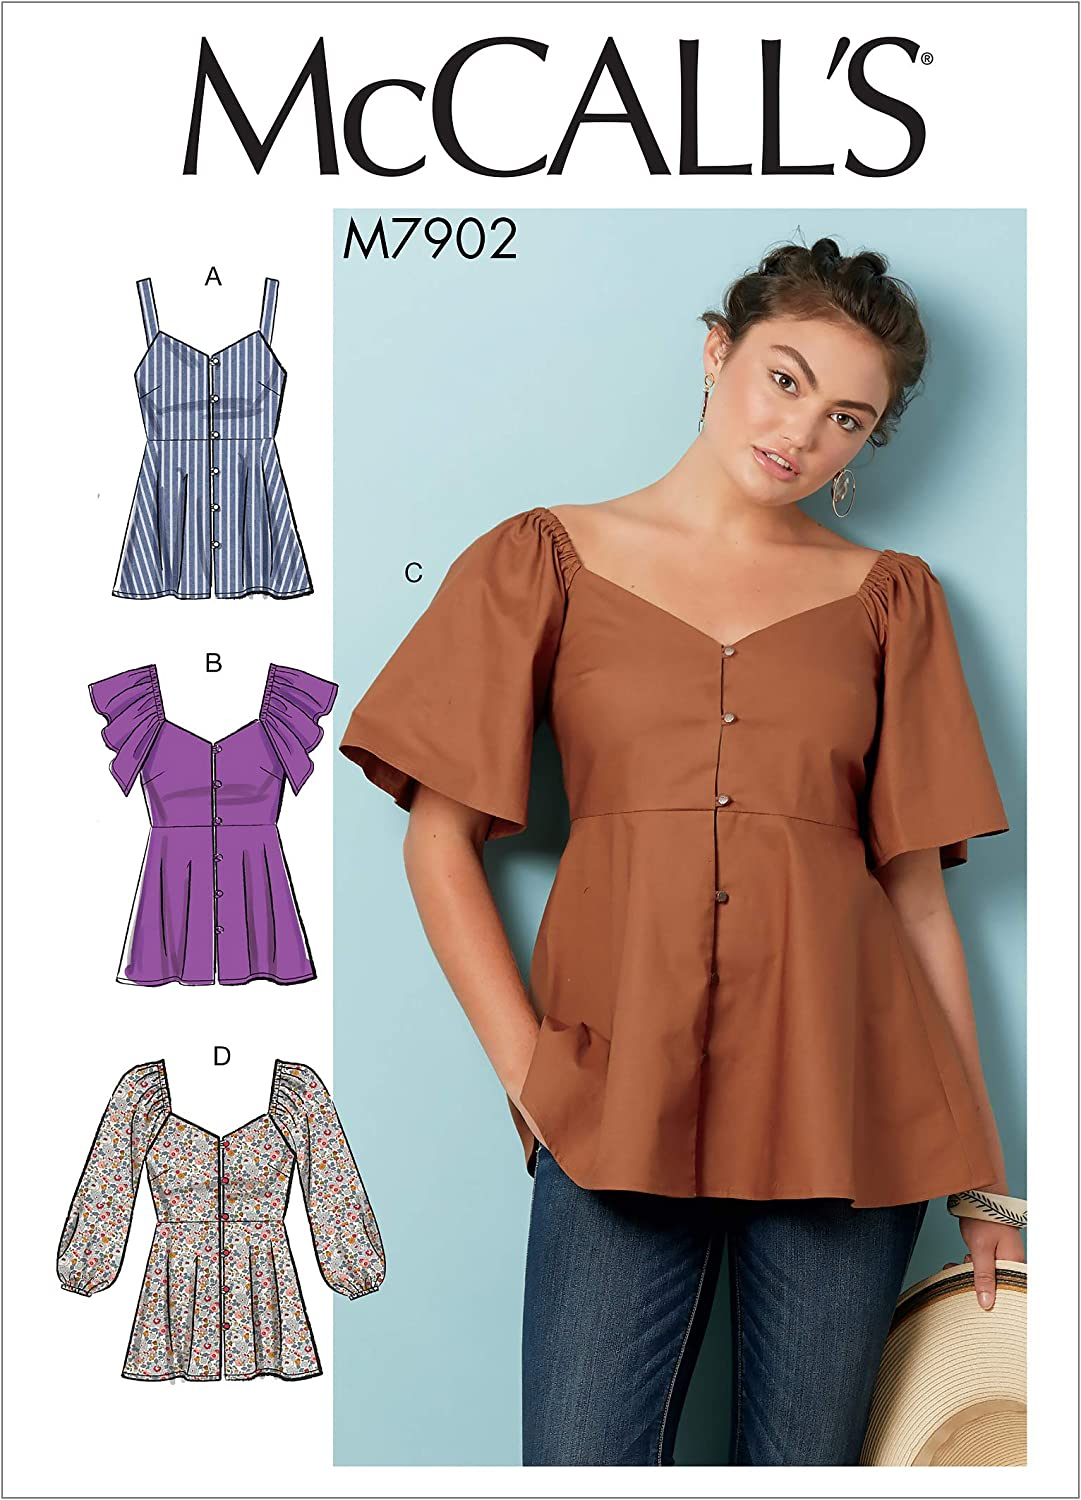 McCall Pattern Company McCalls M8014A5 Womens Button-Up Close Fitting Blouse Sewing Patterns by Melissa Watson for Palmer//Pletsch Sizes 6-14